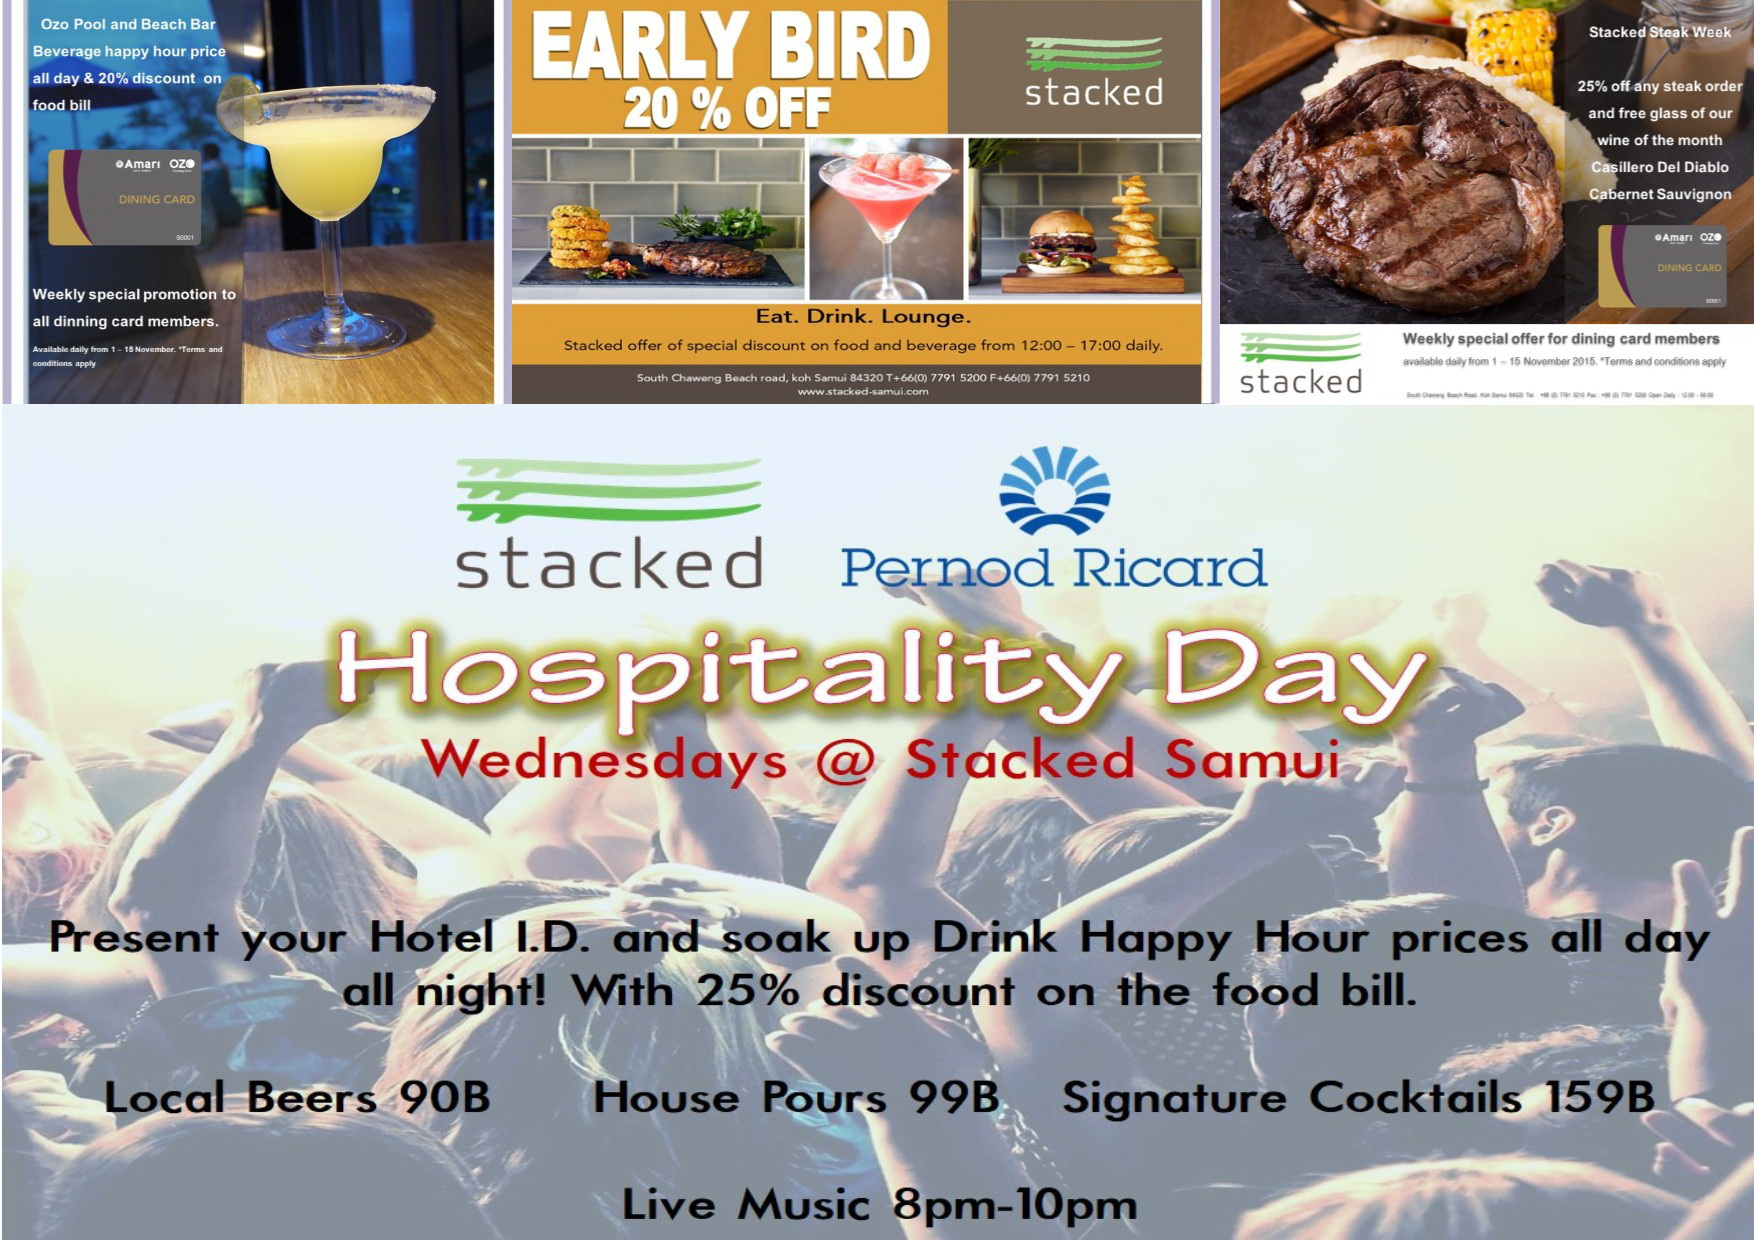 Enjoy 25% discounts at the Stacked Hospitality Day | Samui Times